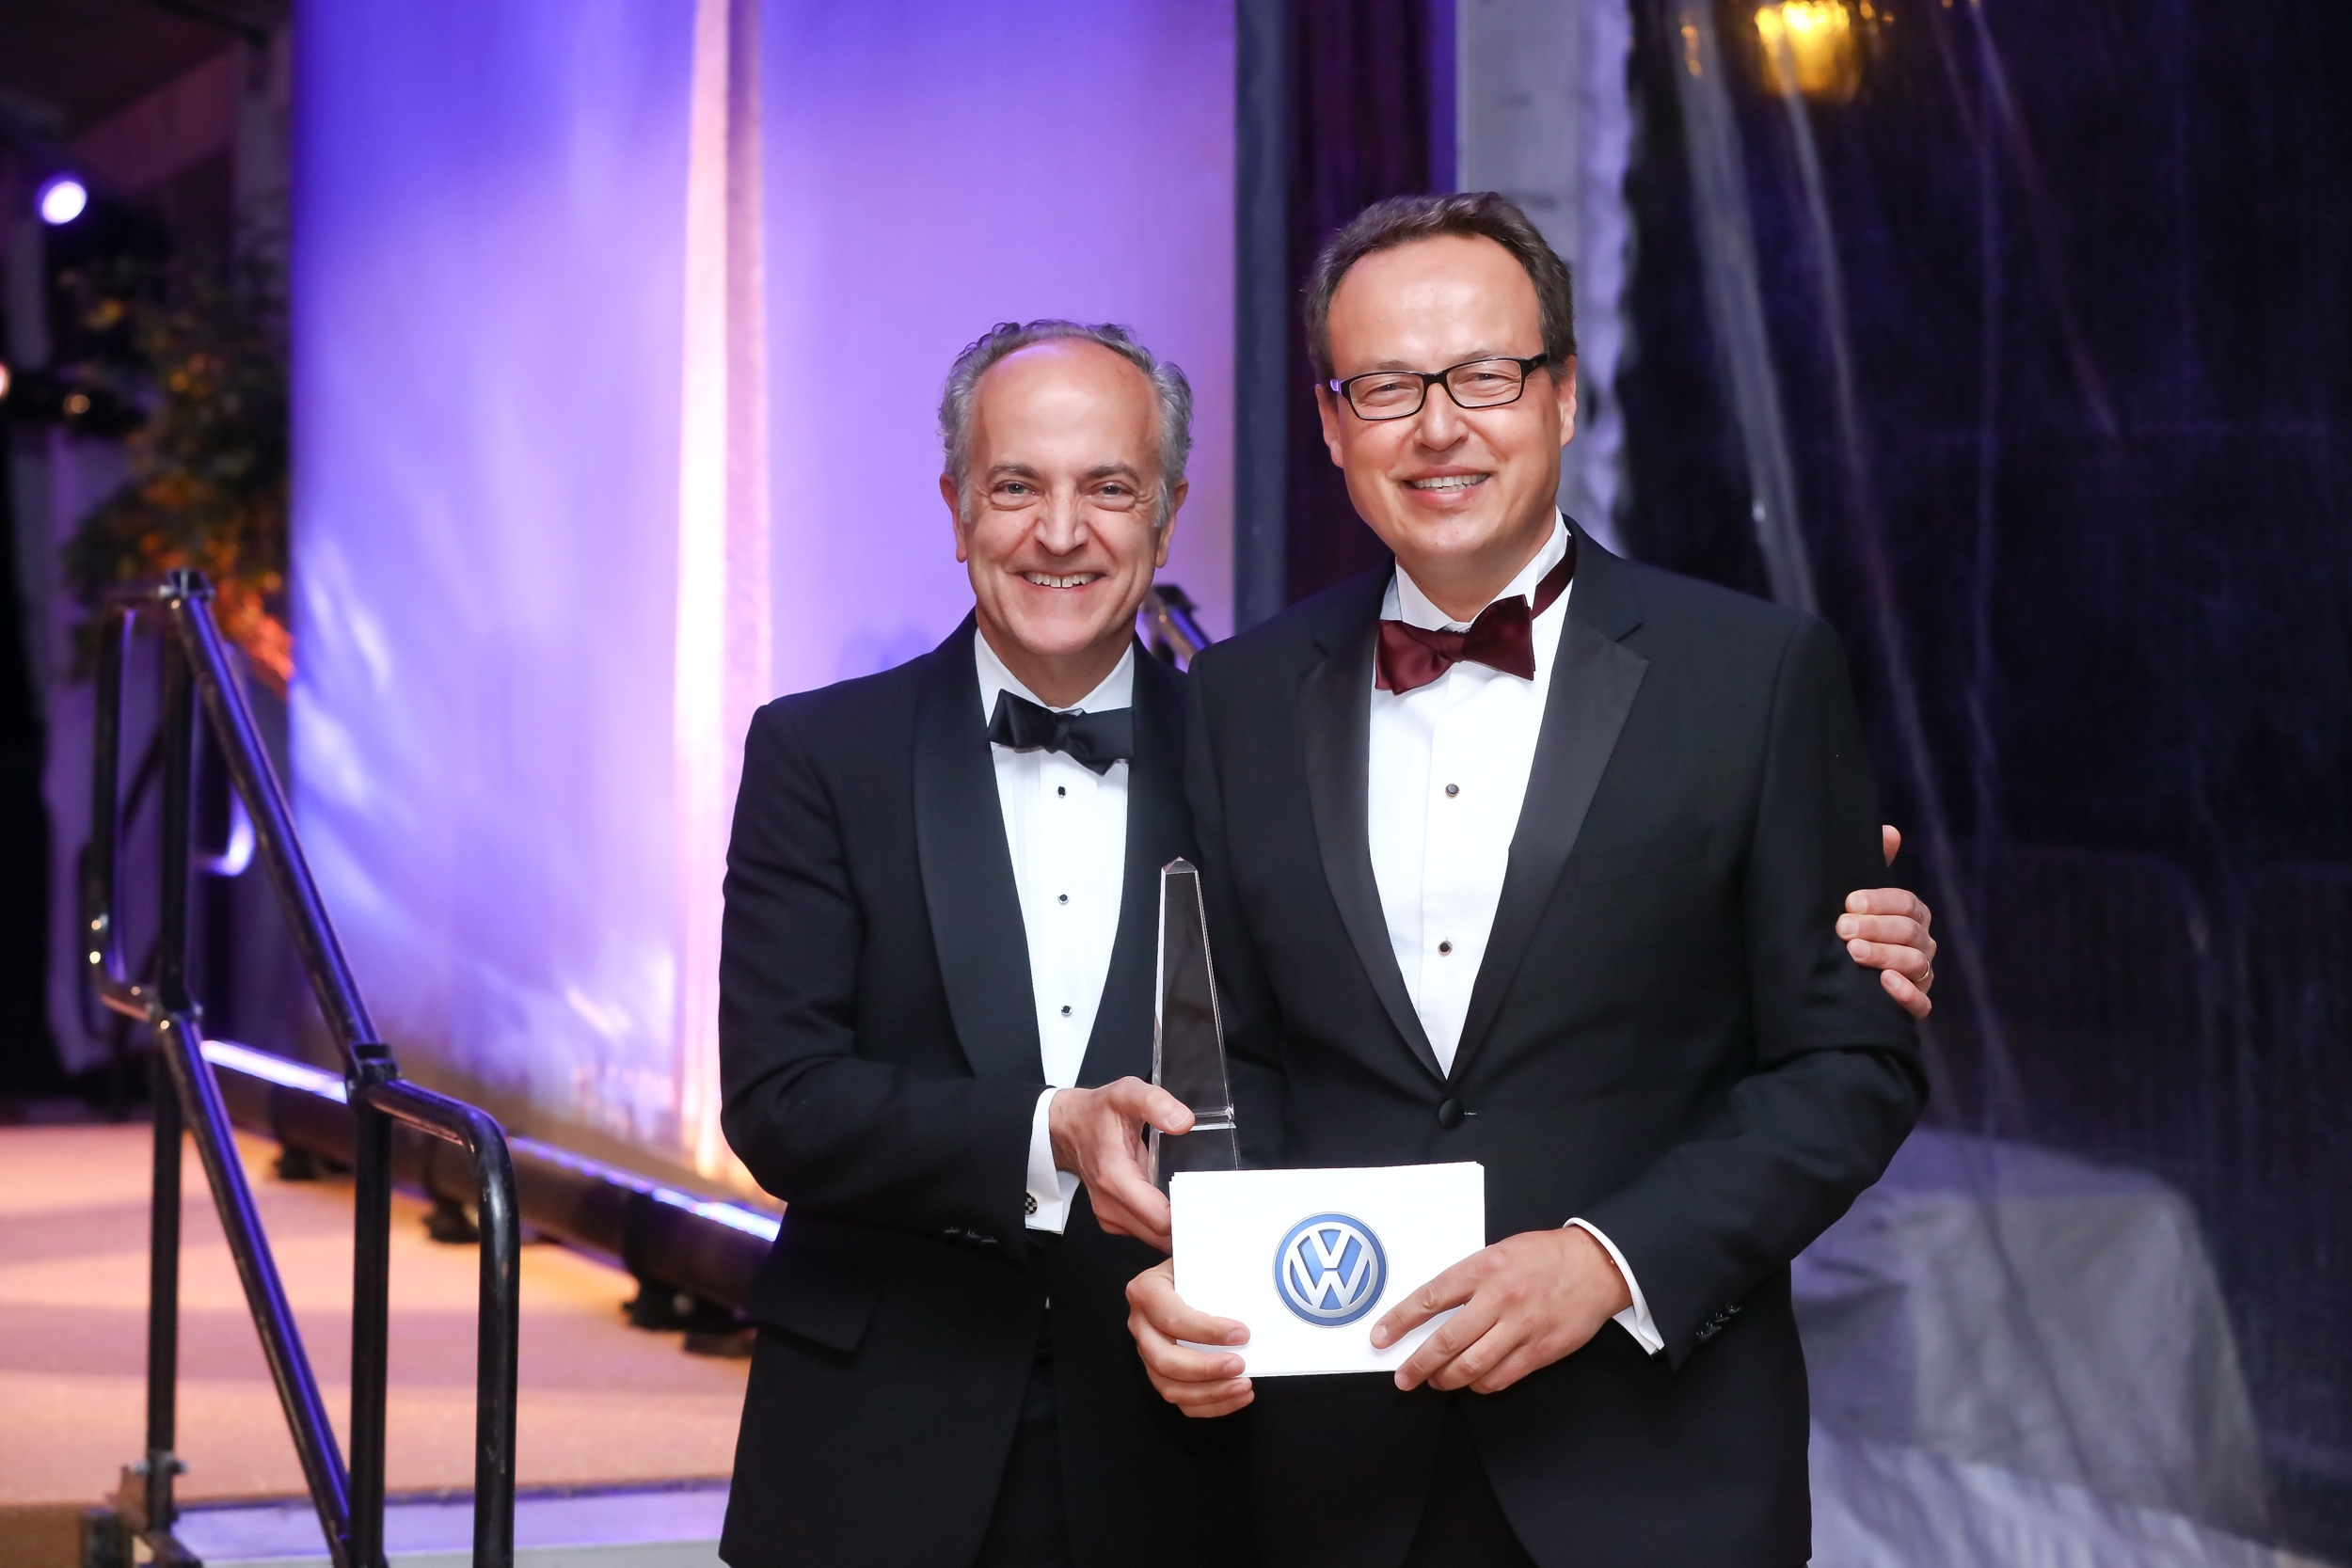 volkswagen of america, inc. recognized for distinction in